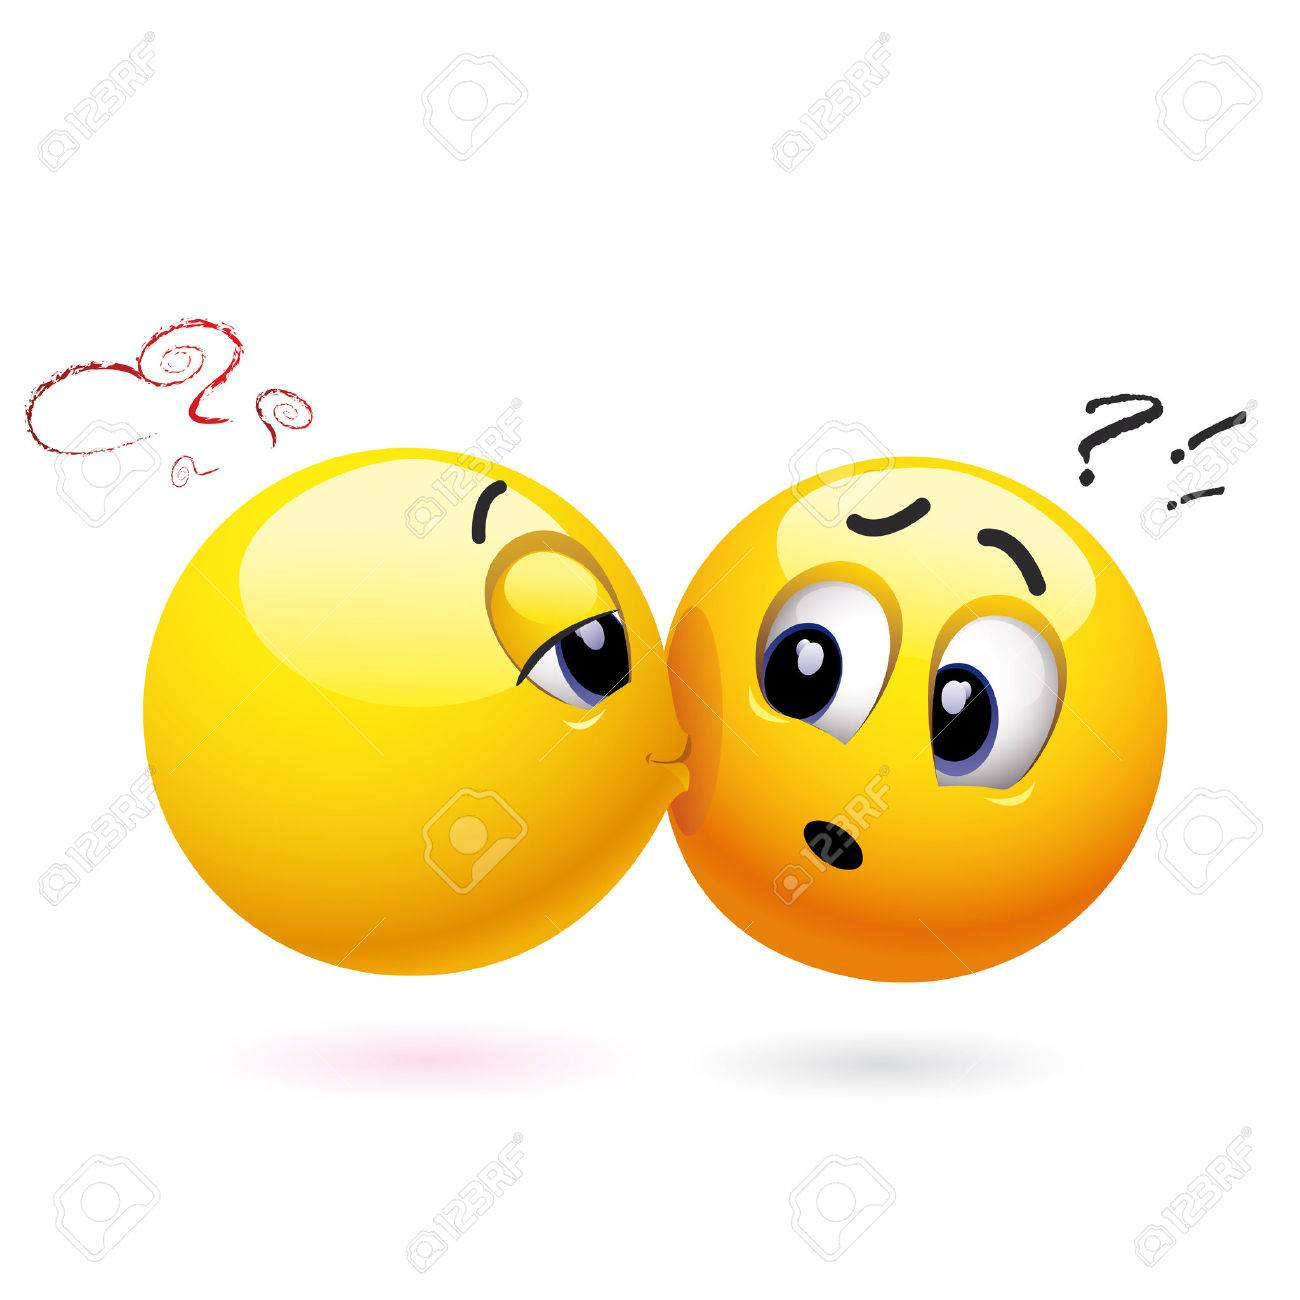 Smiling ball kissing another smiling ball Stock Vector - 4798257